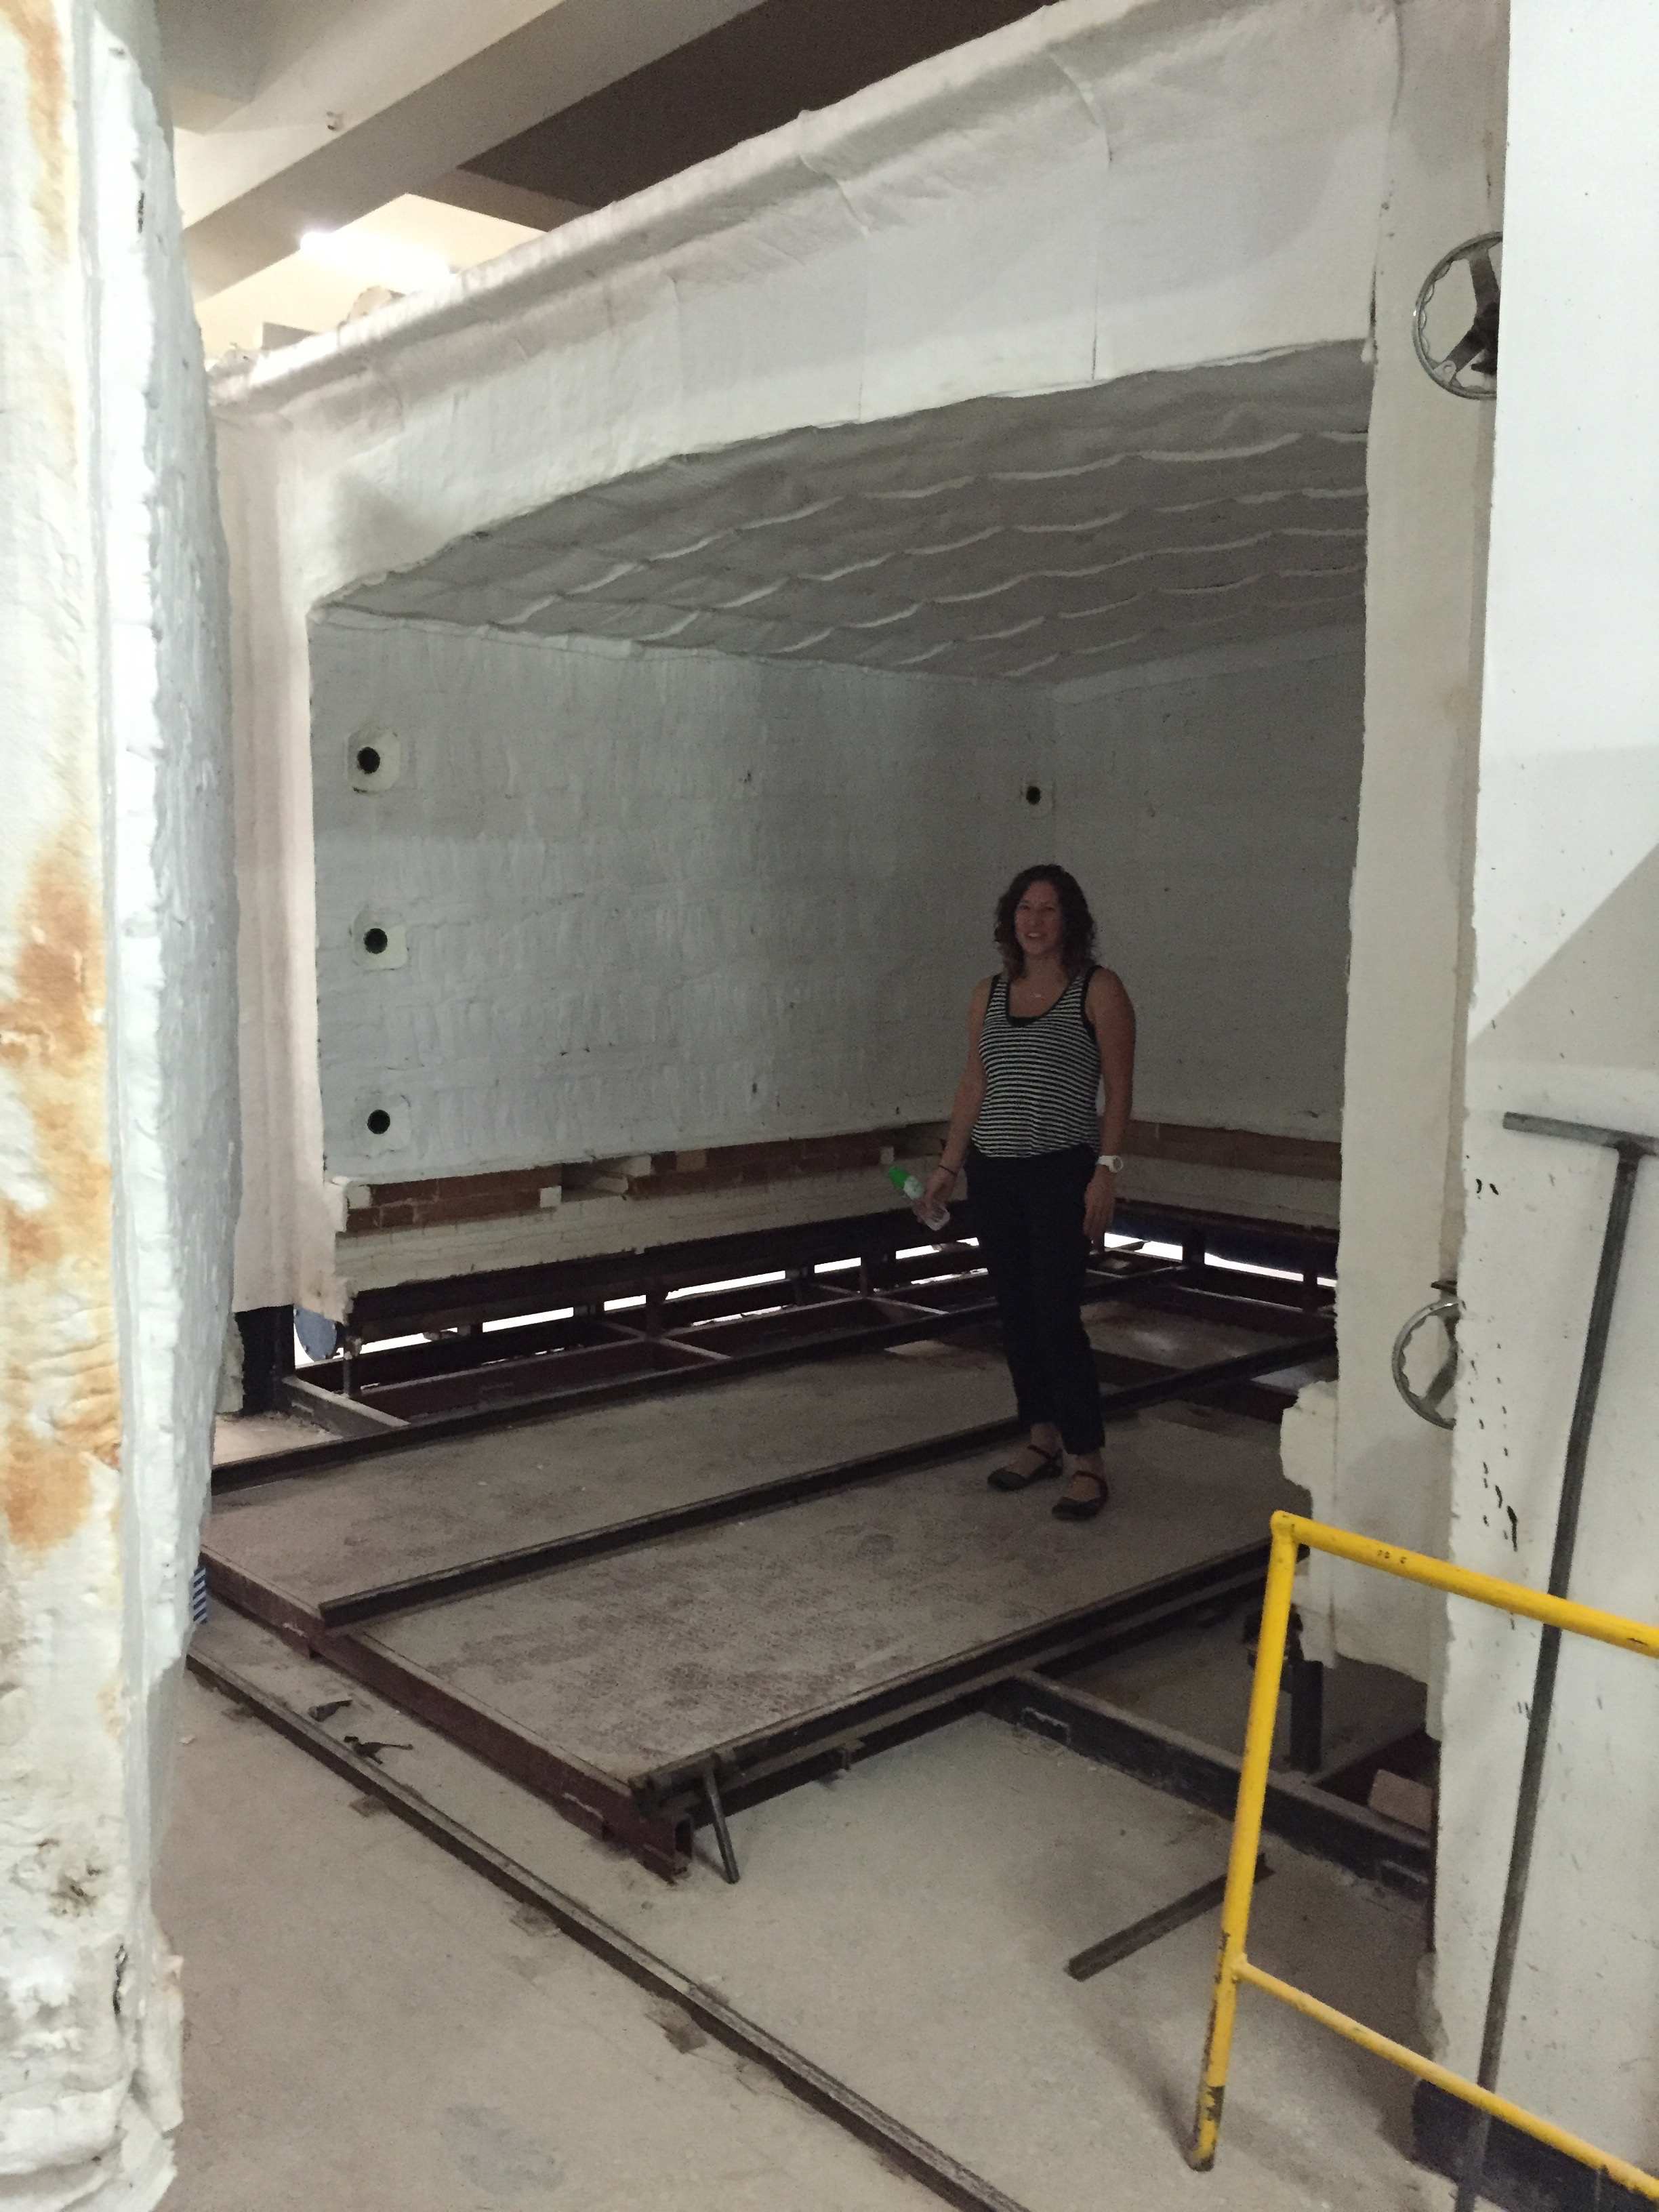 Check out the size of this car kiln! It is huge!!!